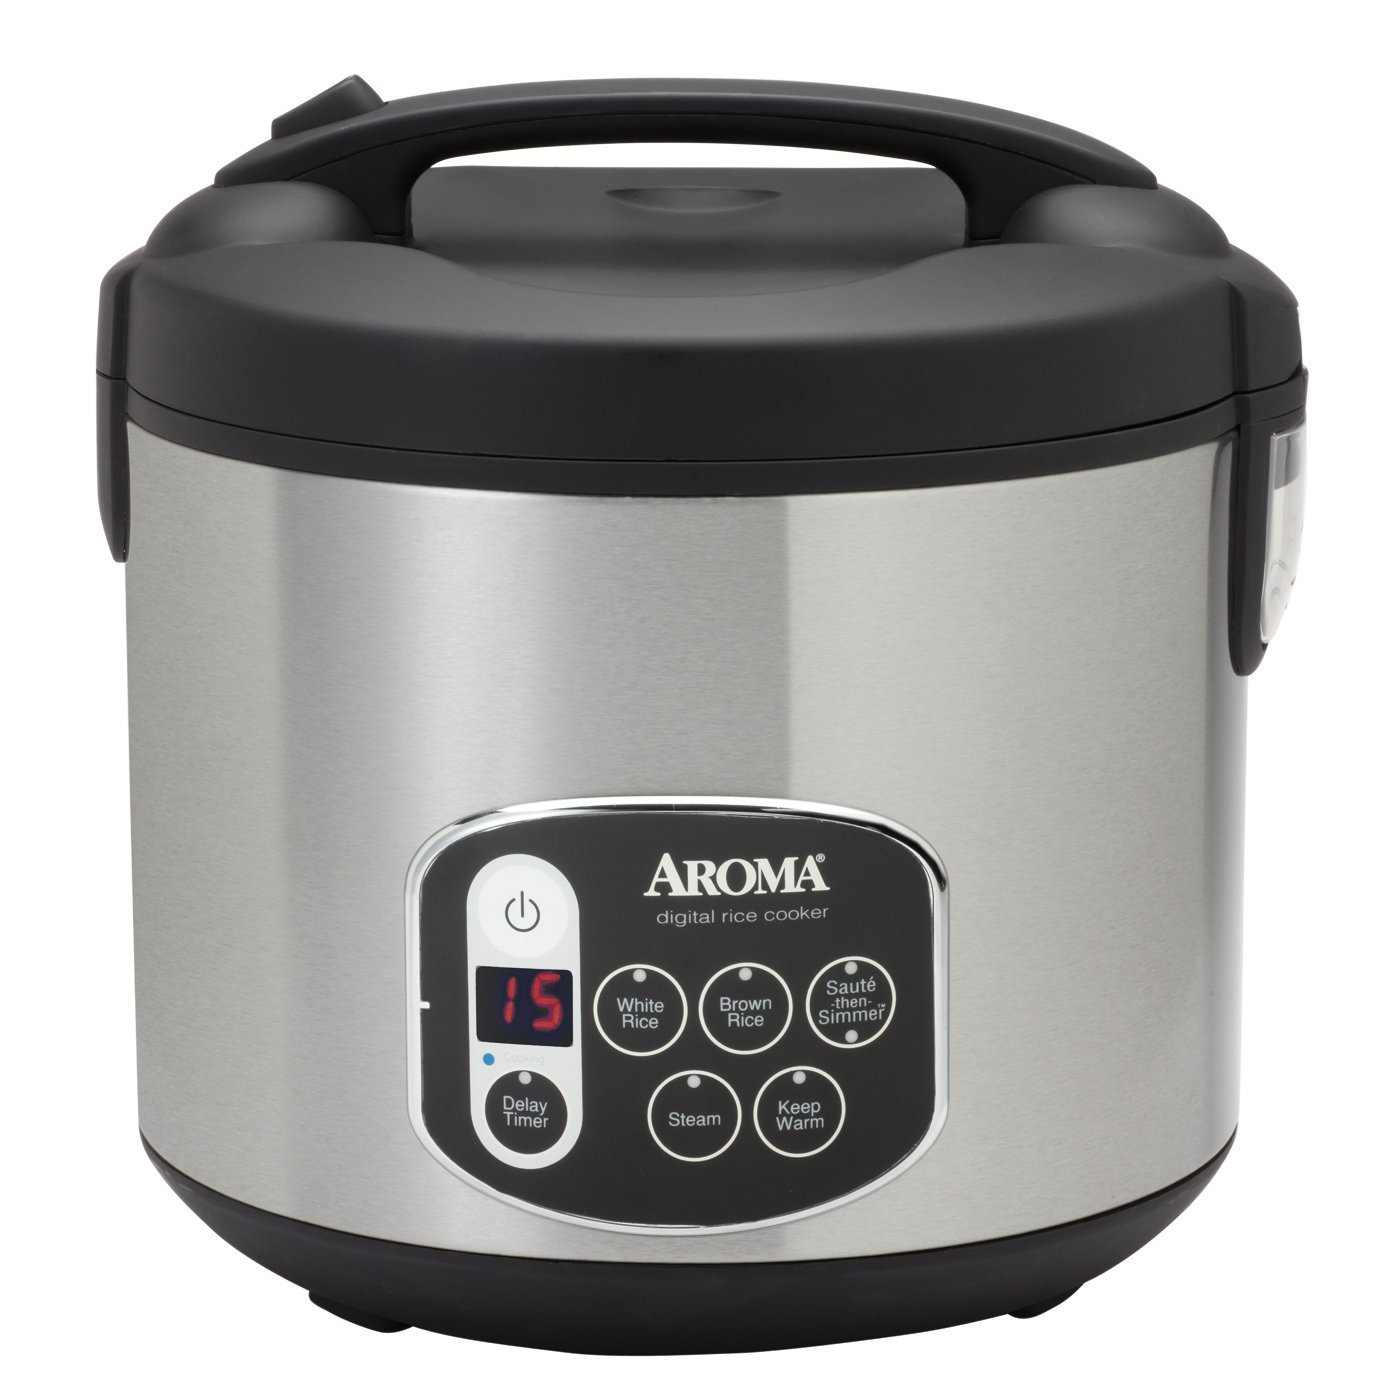 Best Rice Cooker for Risotto